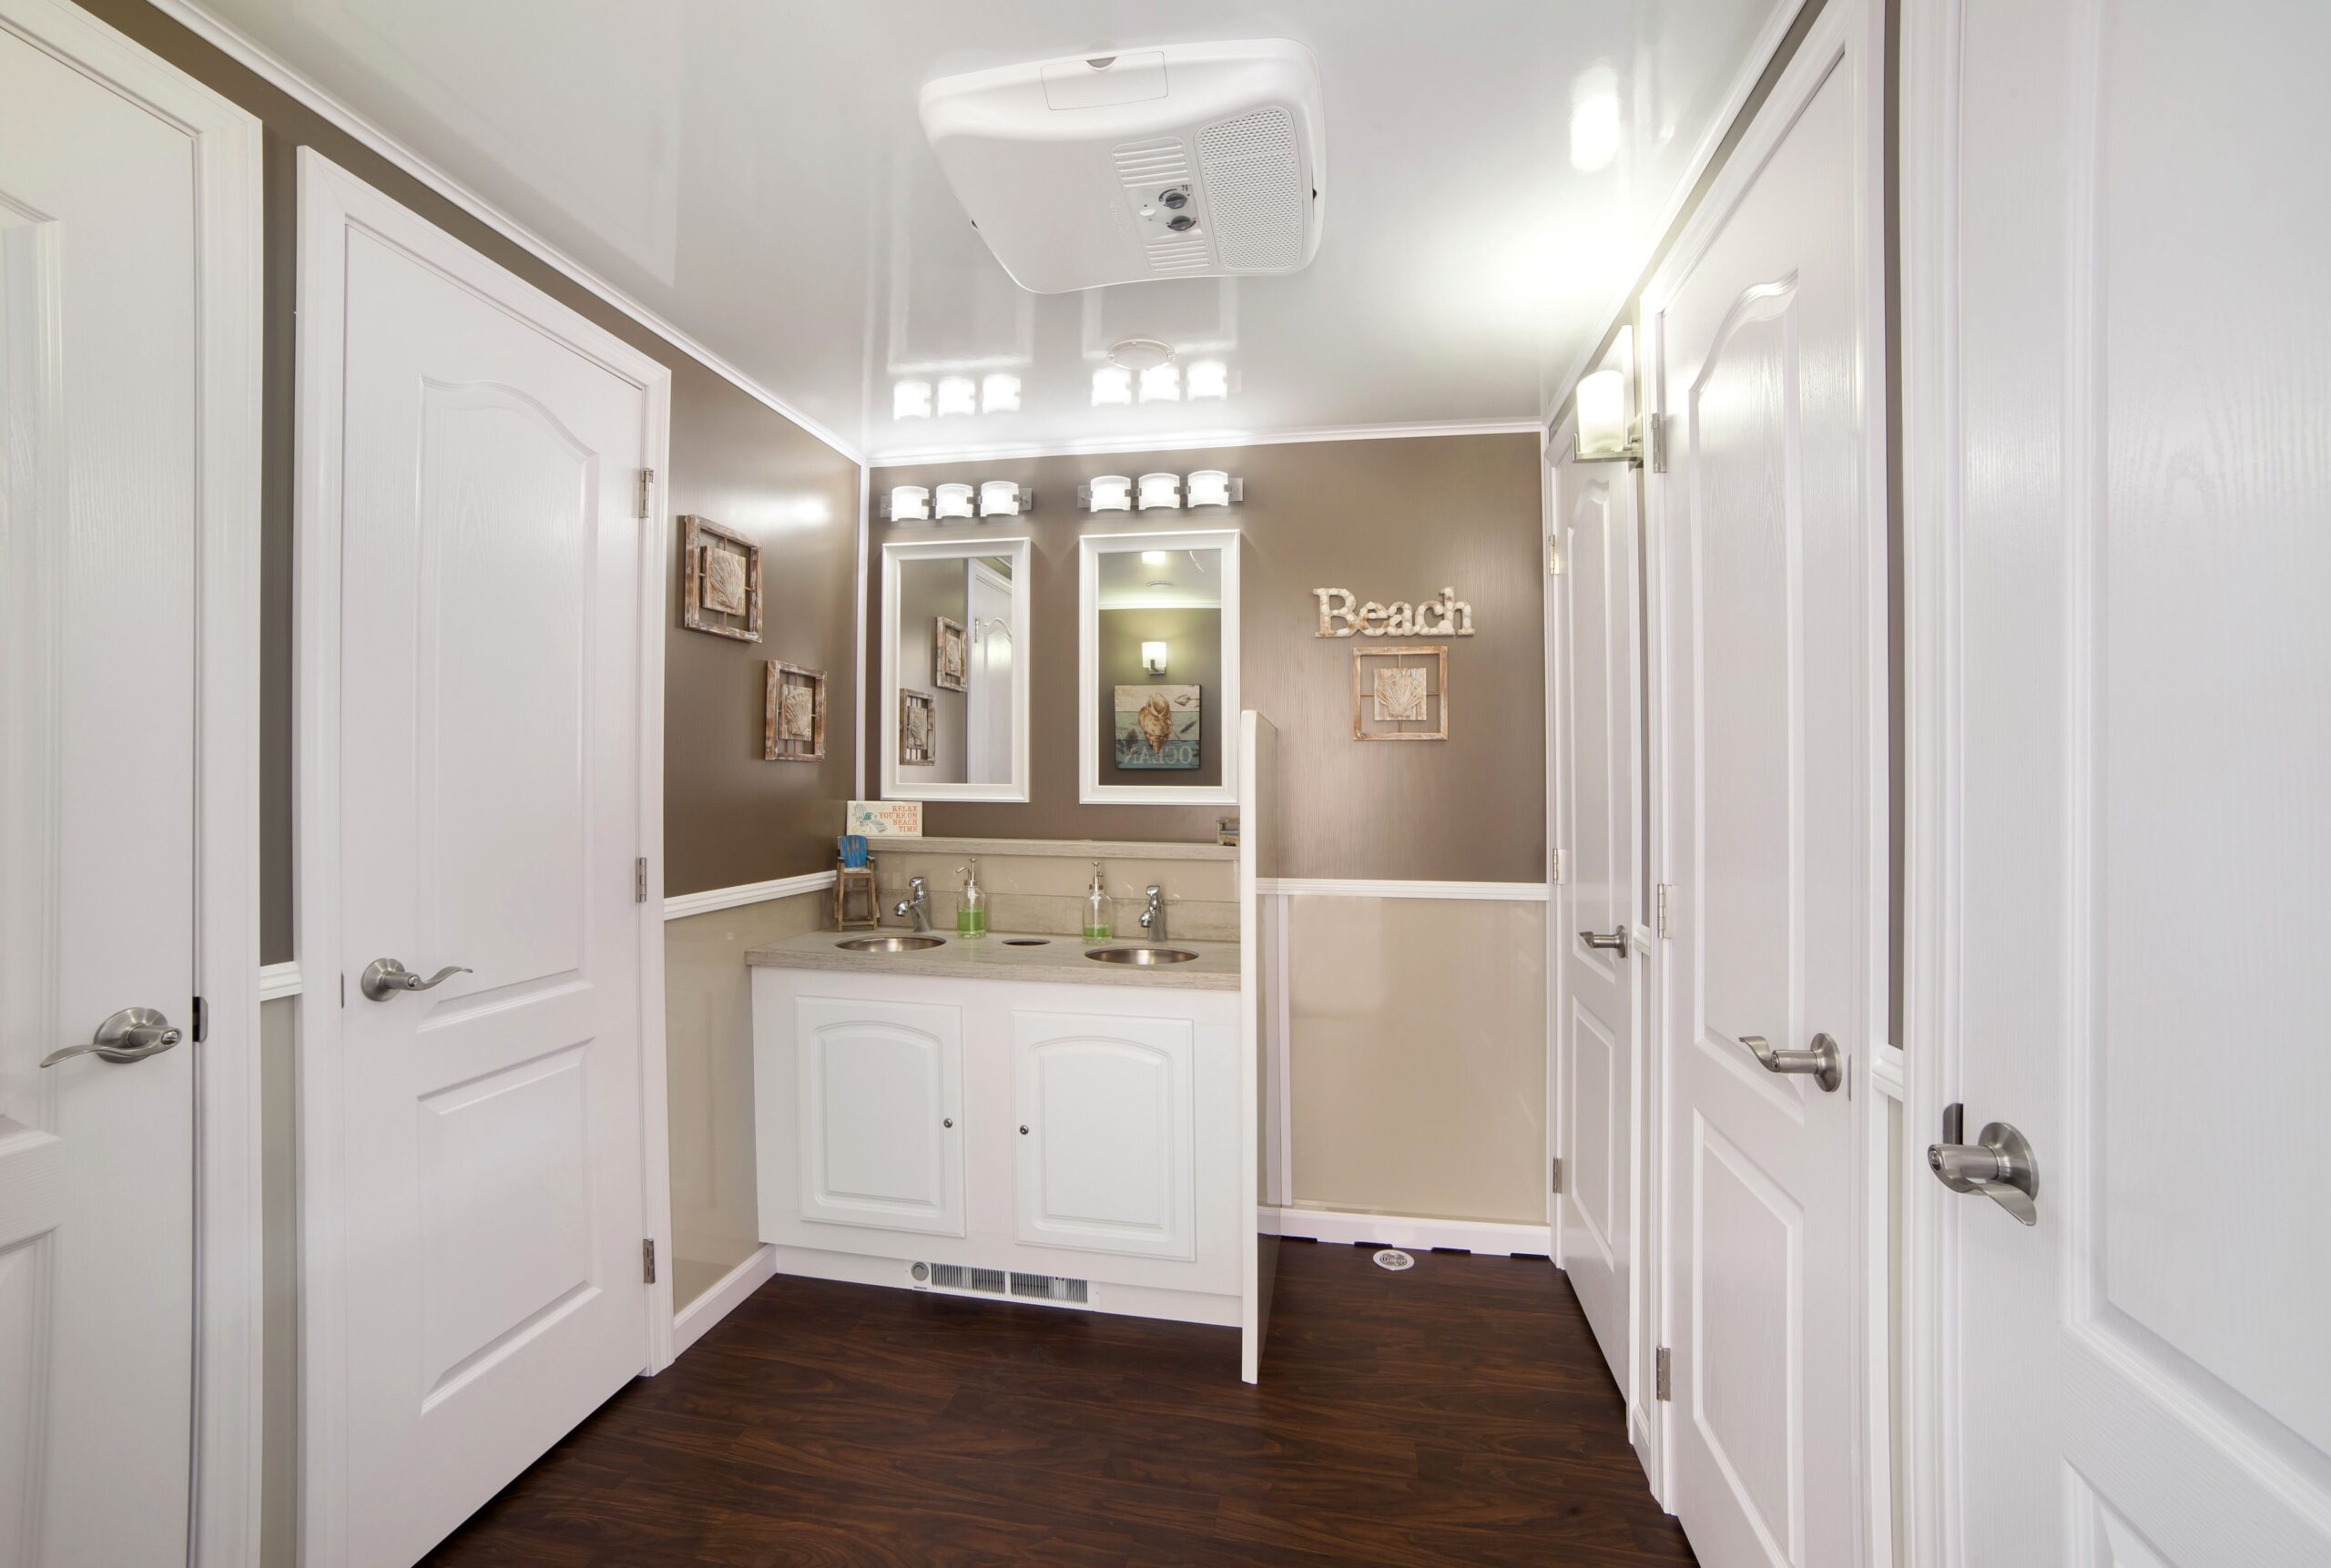 Inside view of a five station restroom trailer with two sinks and a wooden floor